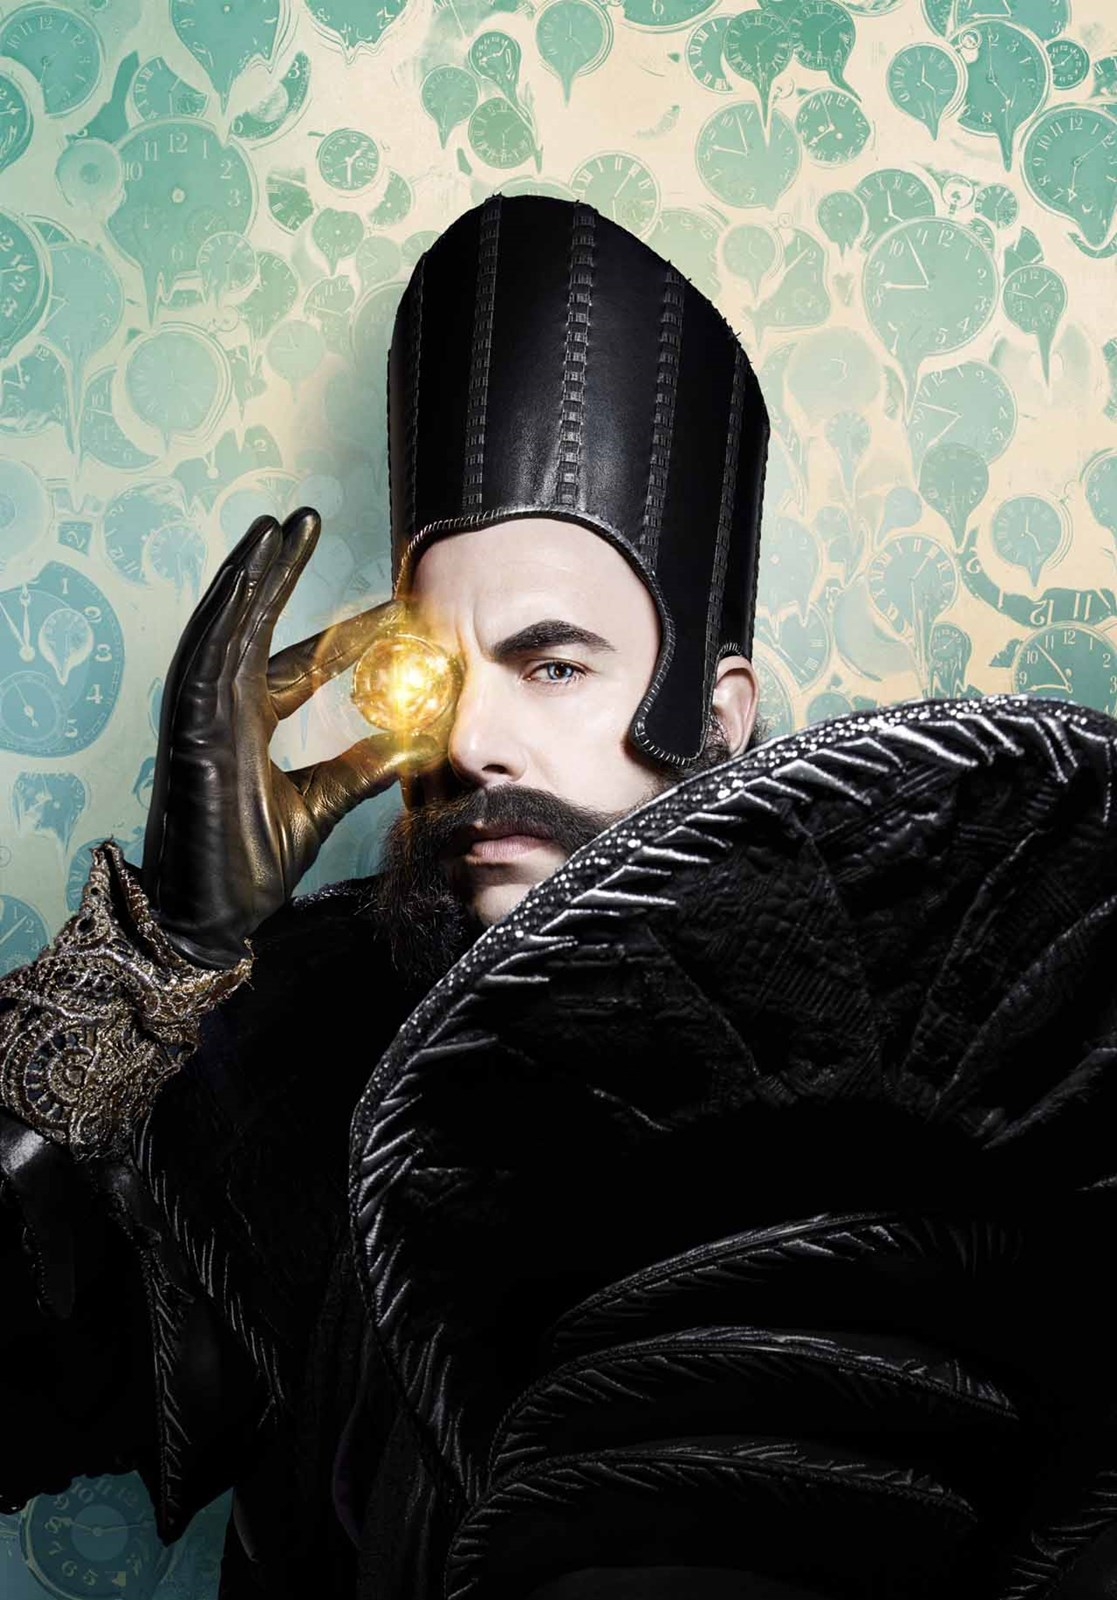 Alice in Wonderland: Through the Looking Glass - Il character poster di Sacha Baron Cohen